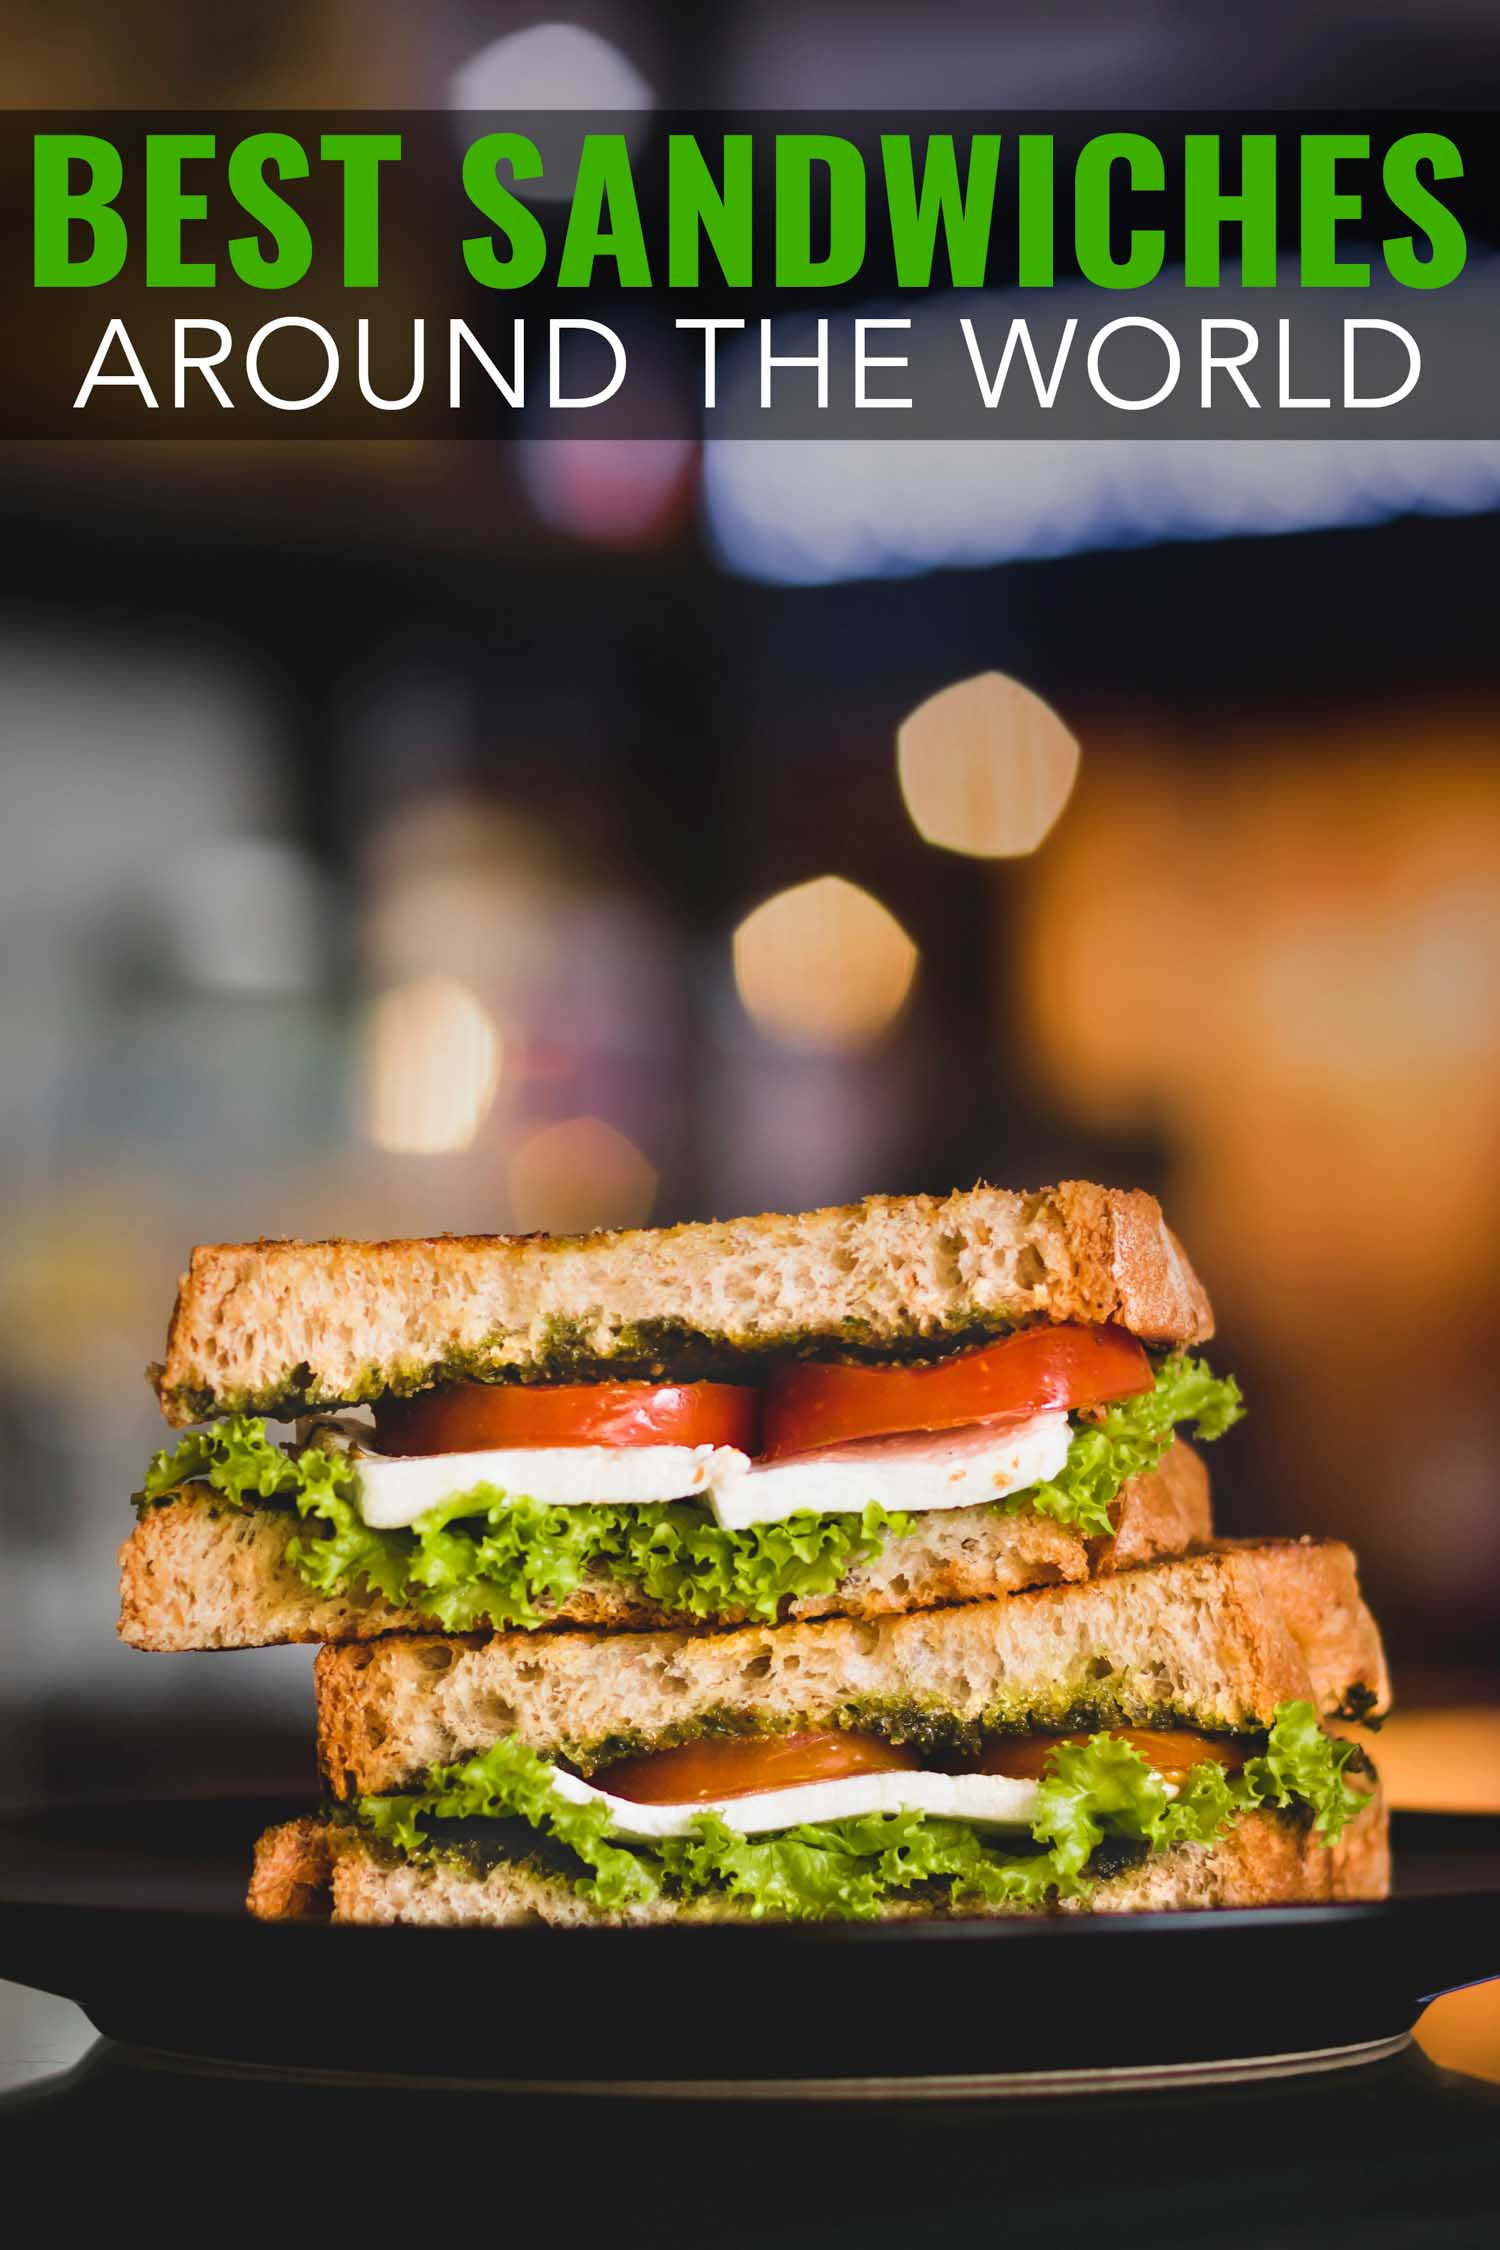 The most delicious bucket list, do you know the best sandwiches in the world? Here are the top sandwiches, and yes some are vegetarian.